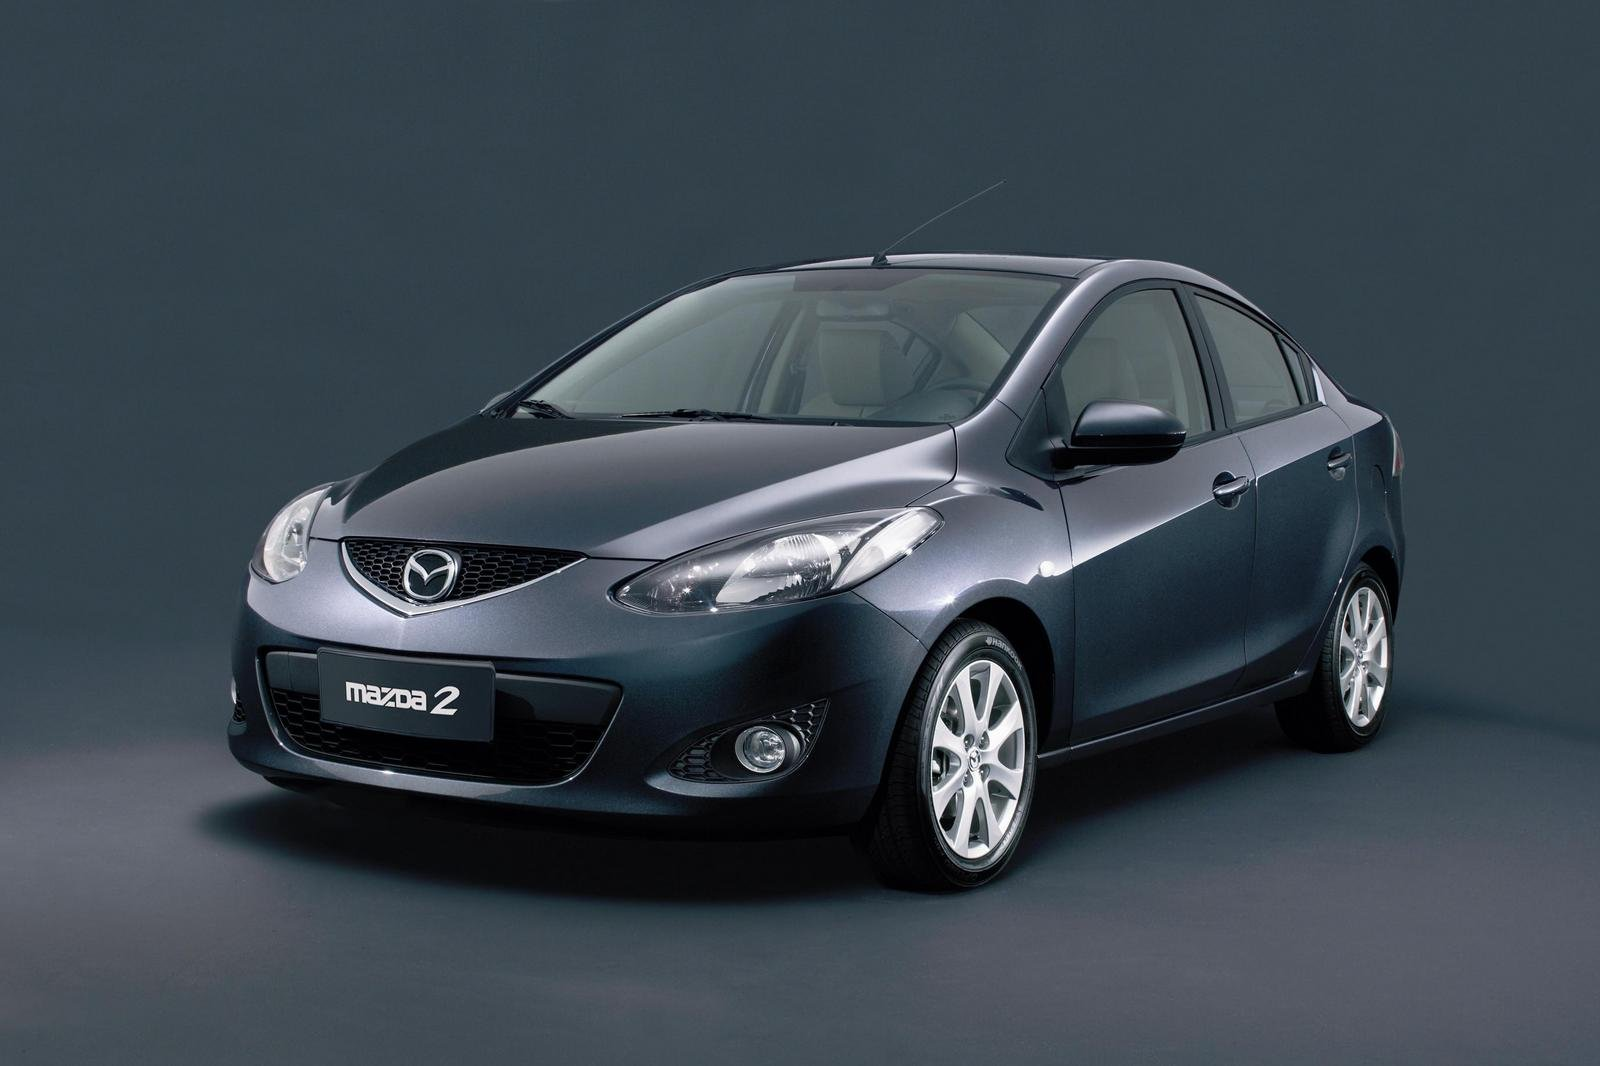 2008 mazda2 sedan picture 215584 car review top speed. Black Bedroom Furniture Sets. Home Design Ideas